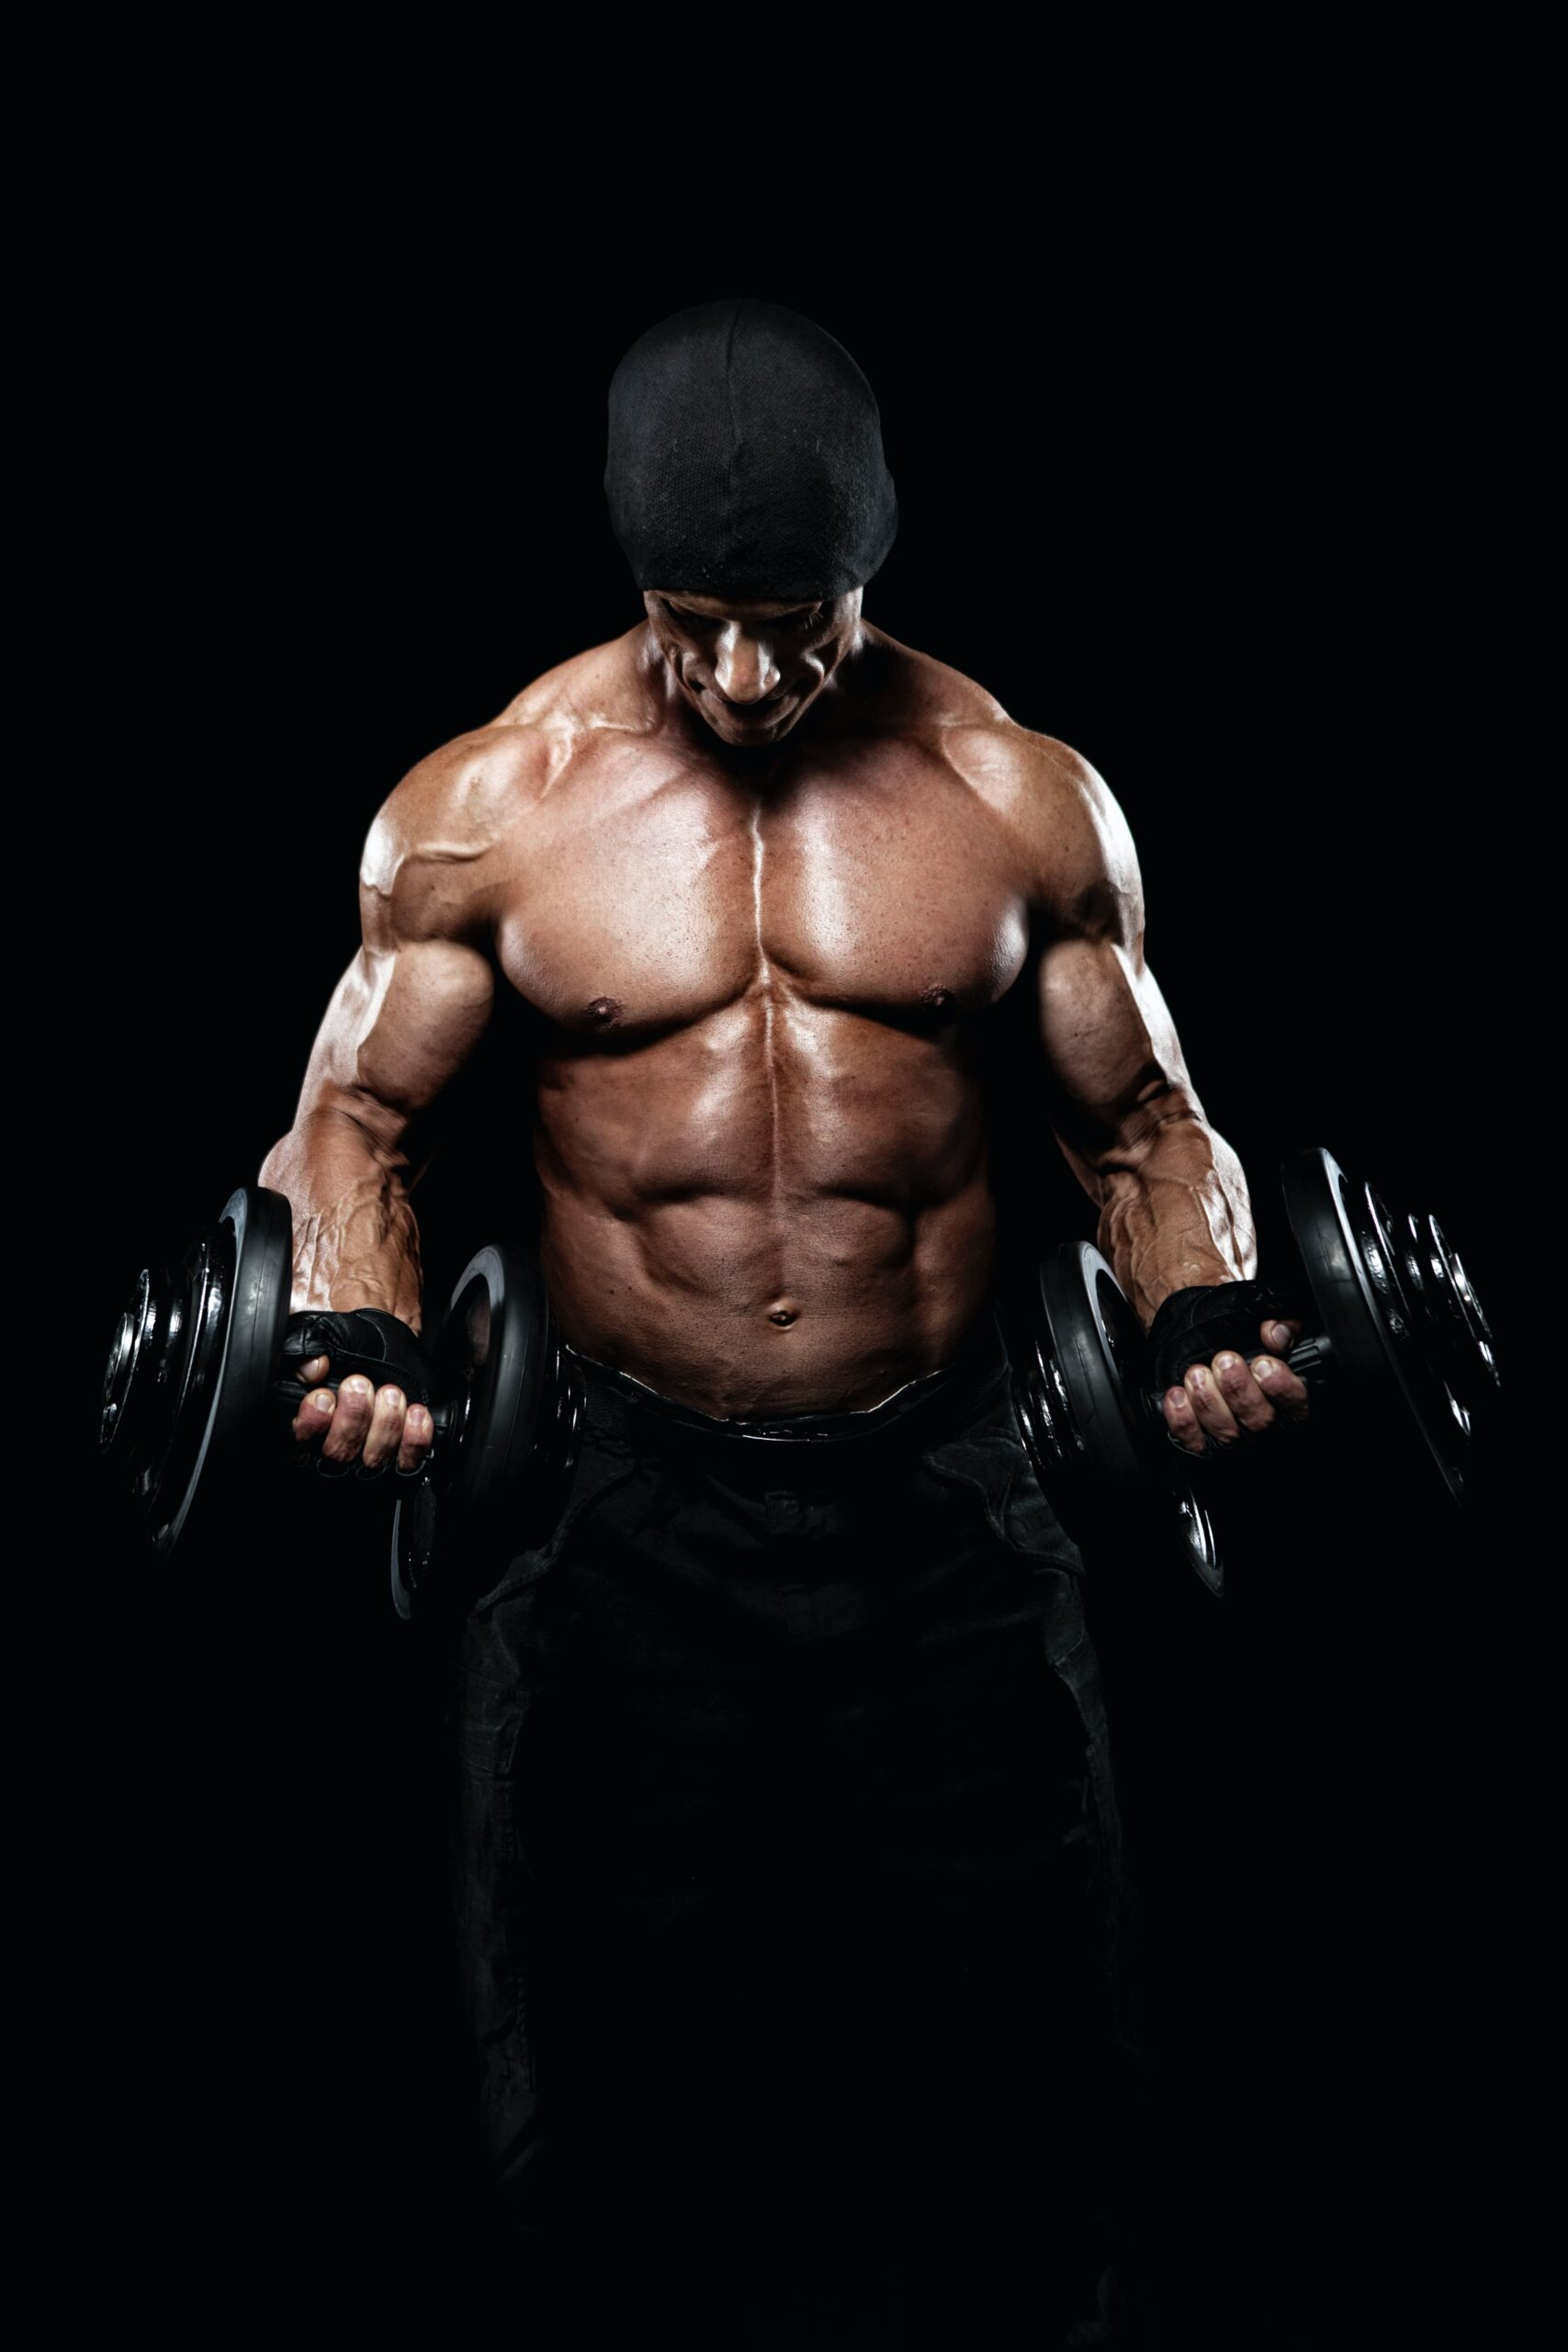 boost your testosterone levels naturally by exercising and body building